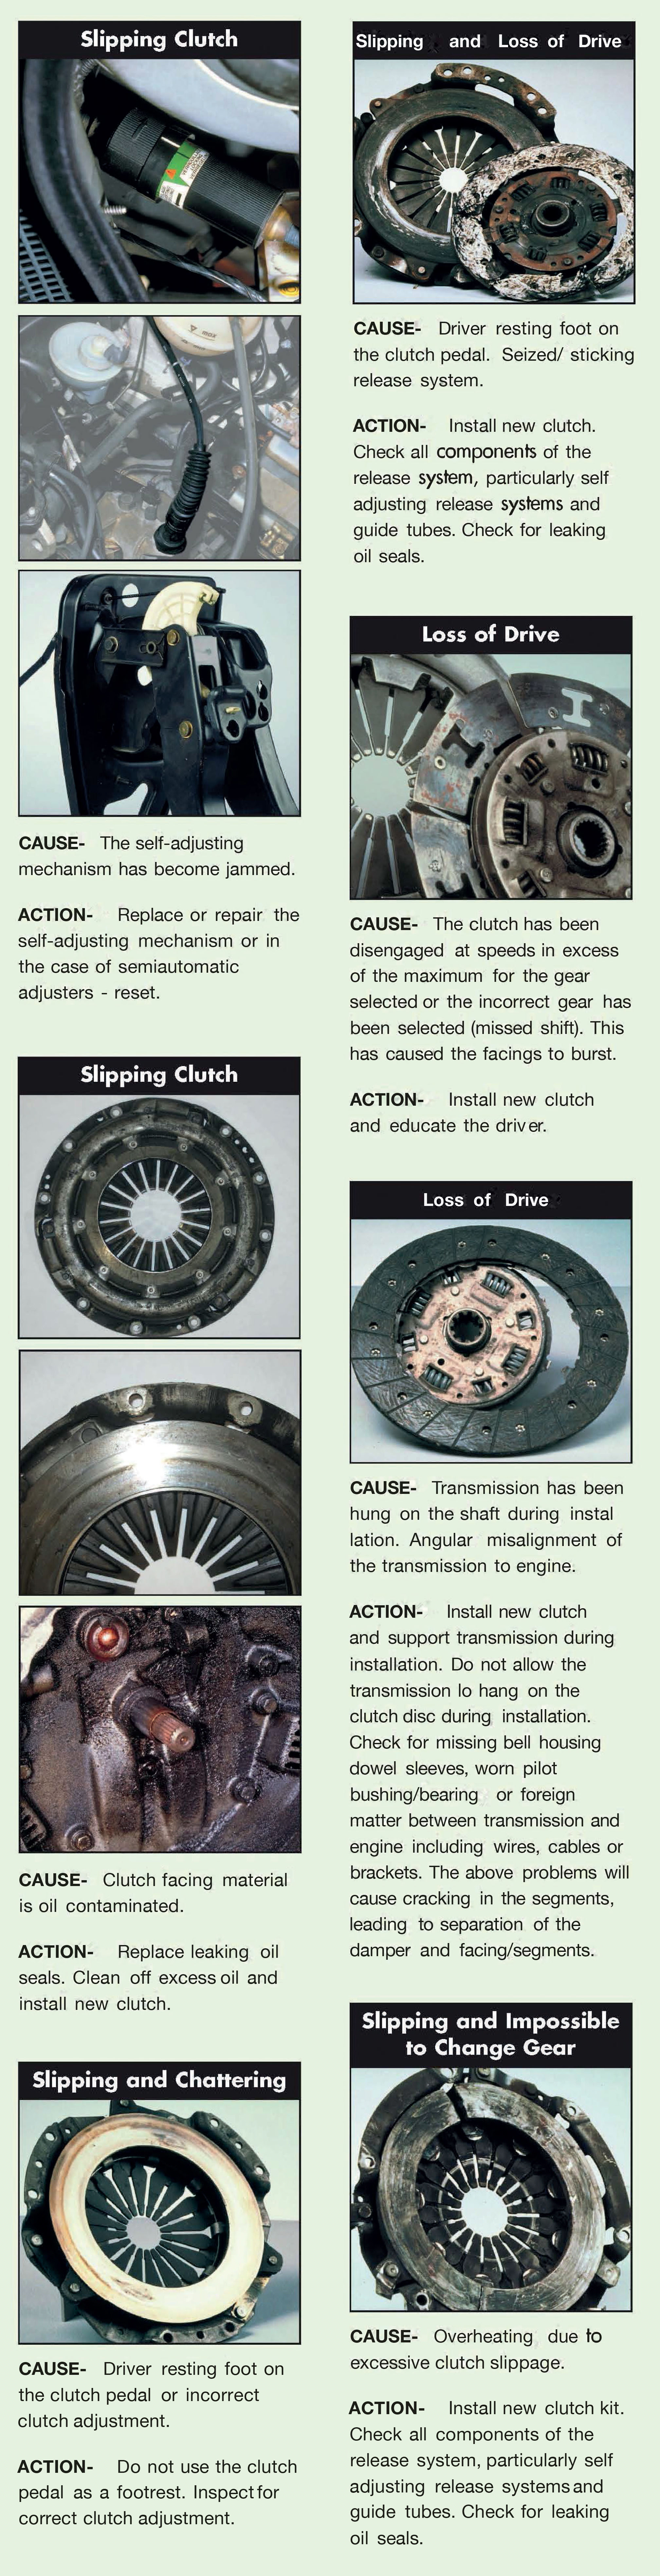 Bully Clutch 1954 Chevy Truck Linkage View The Symptoms And Possible Causes Remedies To Common Problems